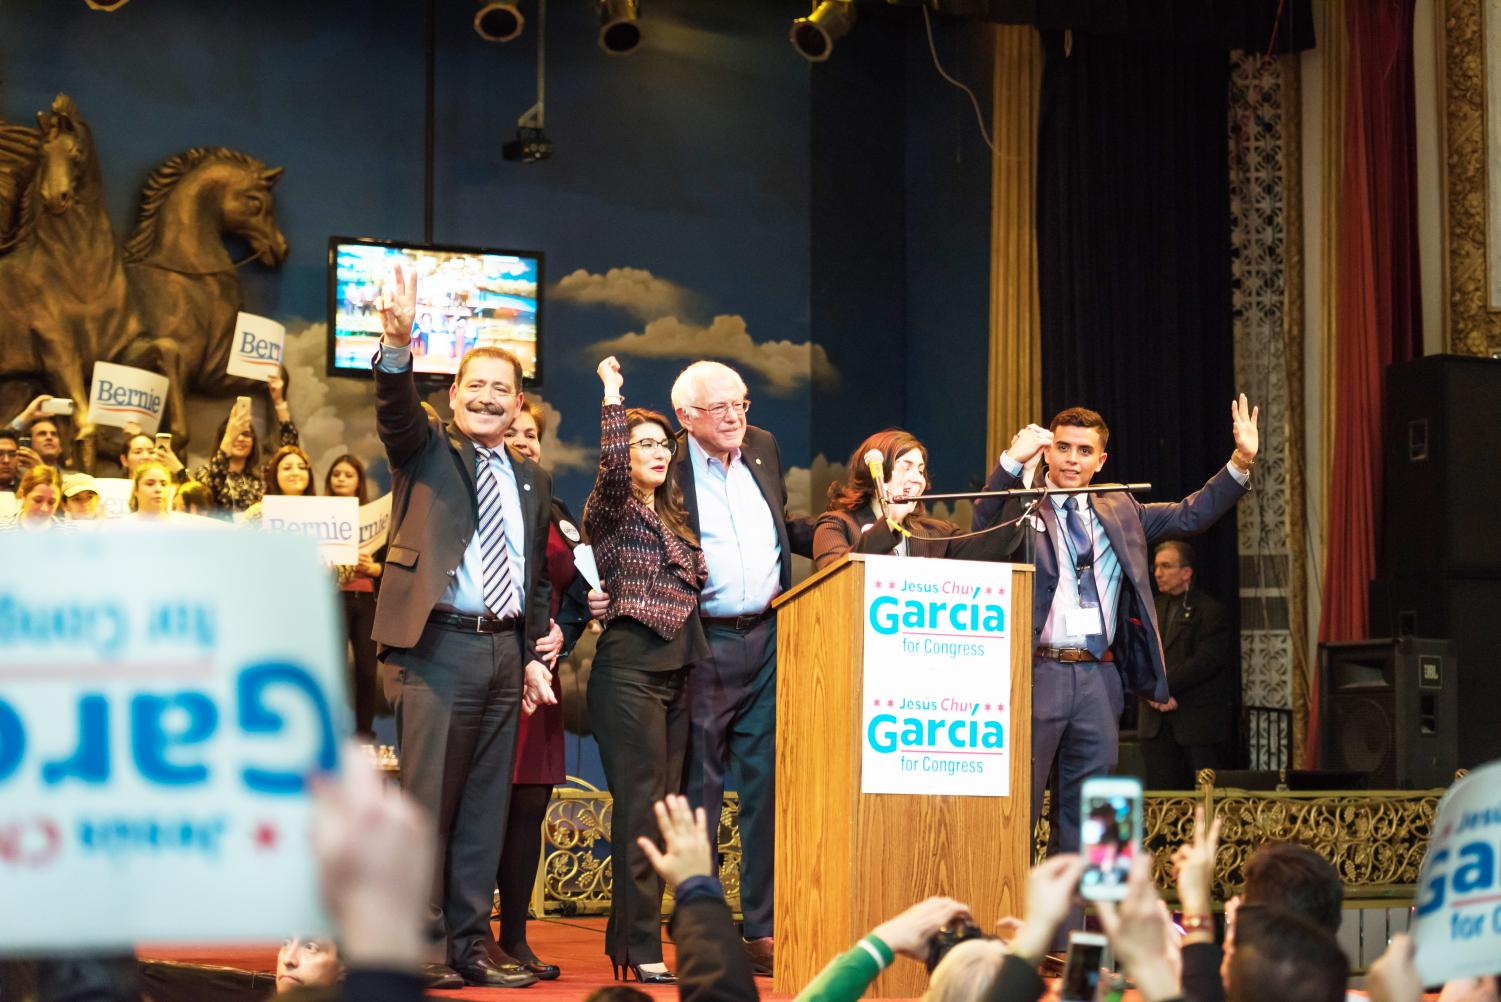 Veteran and amateur politicians alike showed up to support Garcia's bid for the US House of Representatives. Garcia most recently took on Mayor Rahm Emanuel in the 2015 mayoral election and lost. (Konrad Markowski | The DePaulia)